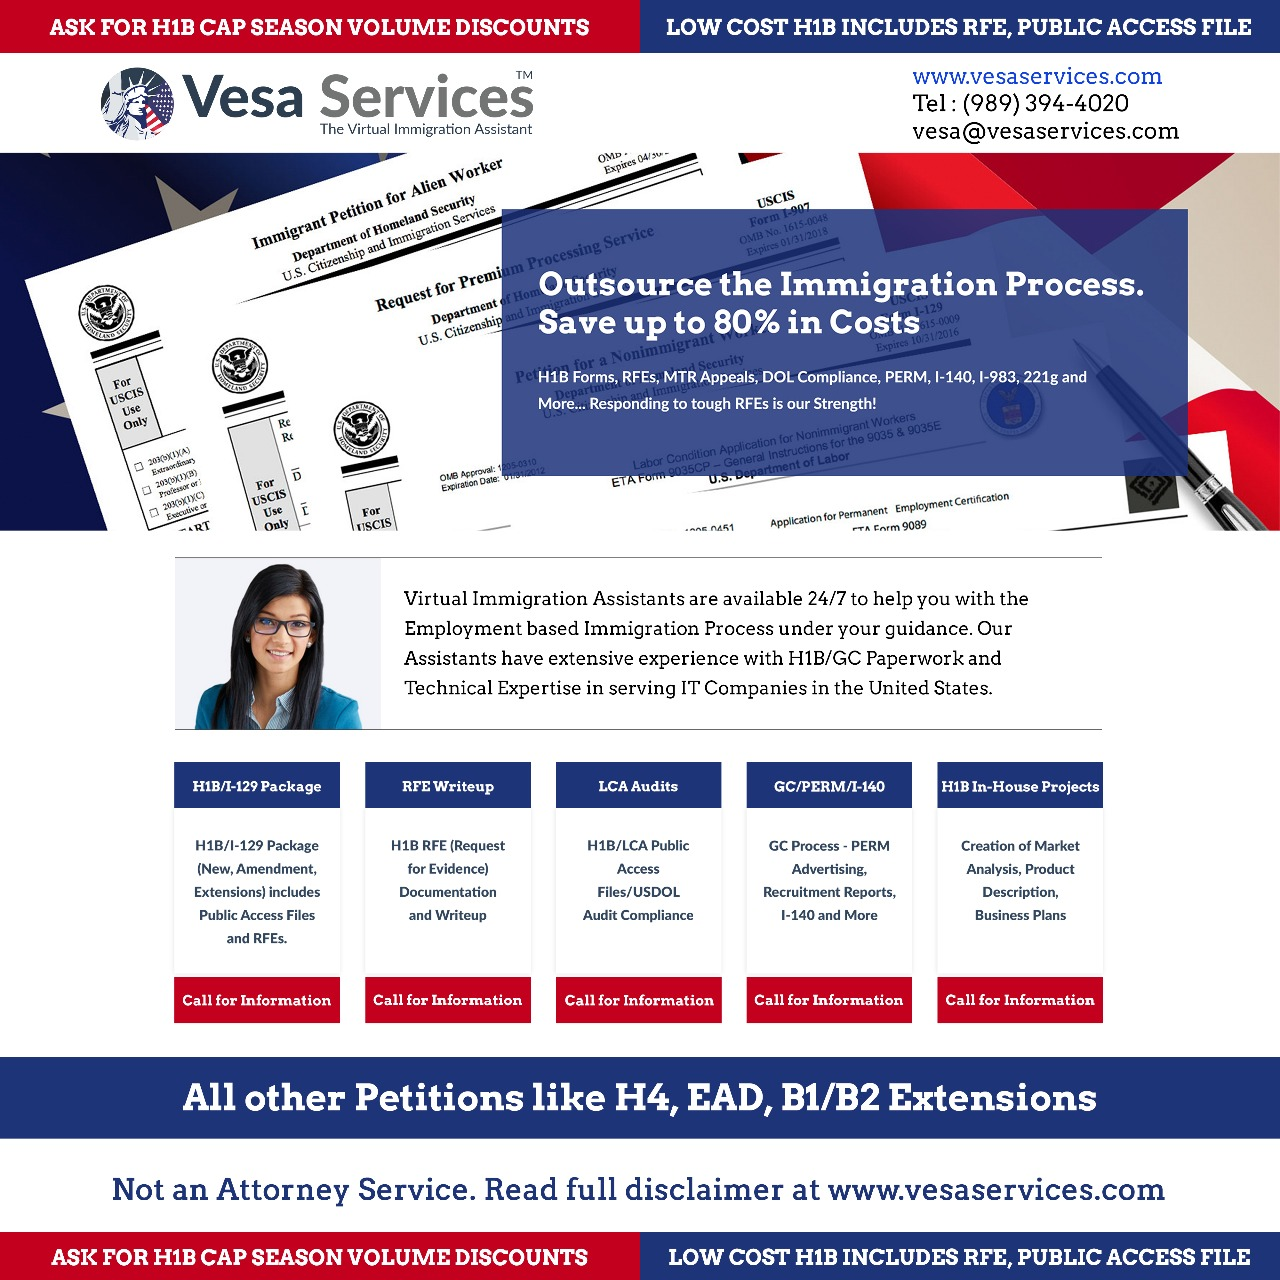 Local Services | Professional Services | Low Cost H1B/I-129